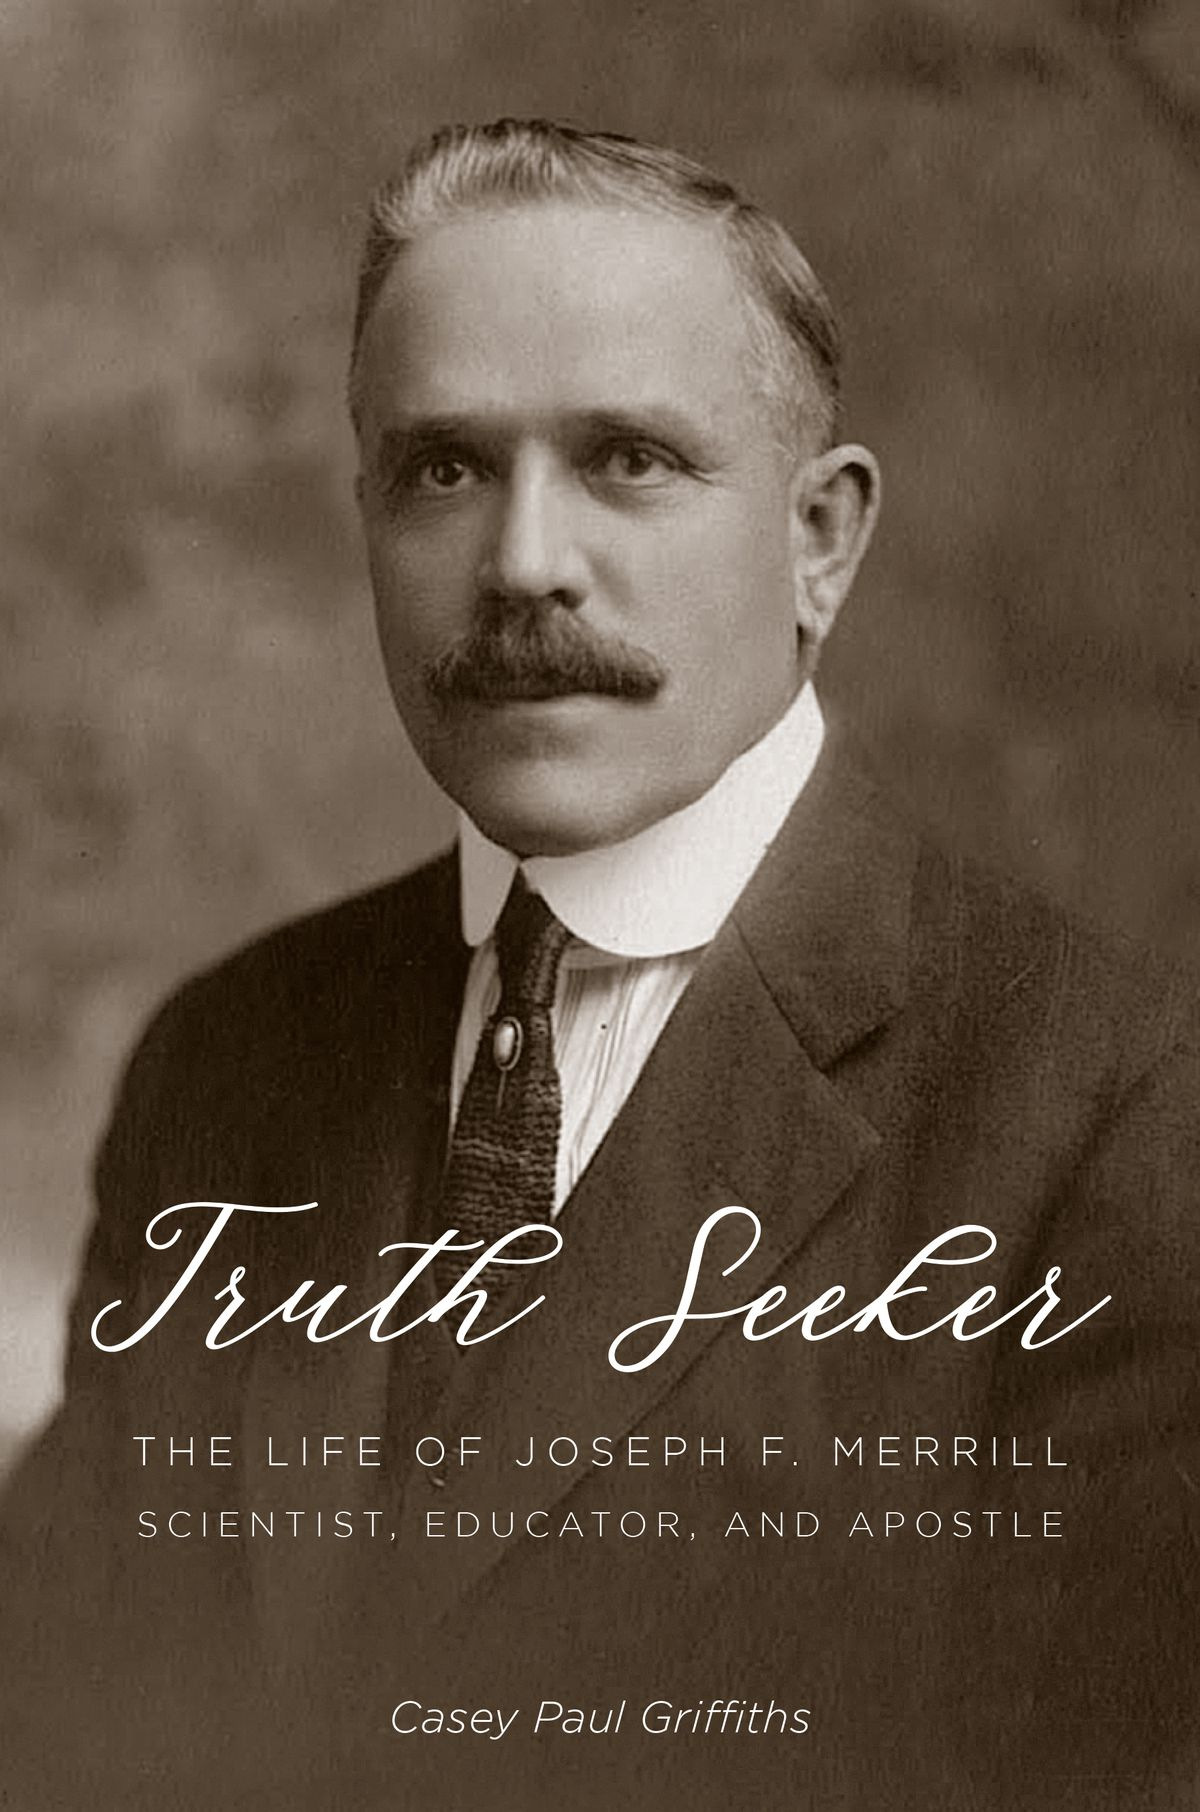 Casey Griffiths is the author of a biography on the life of scientist, educator and apostle Joseph F. Merrill.